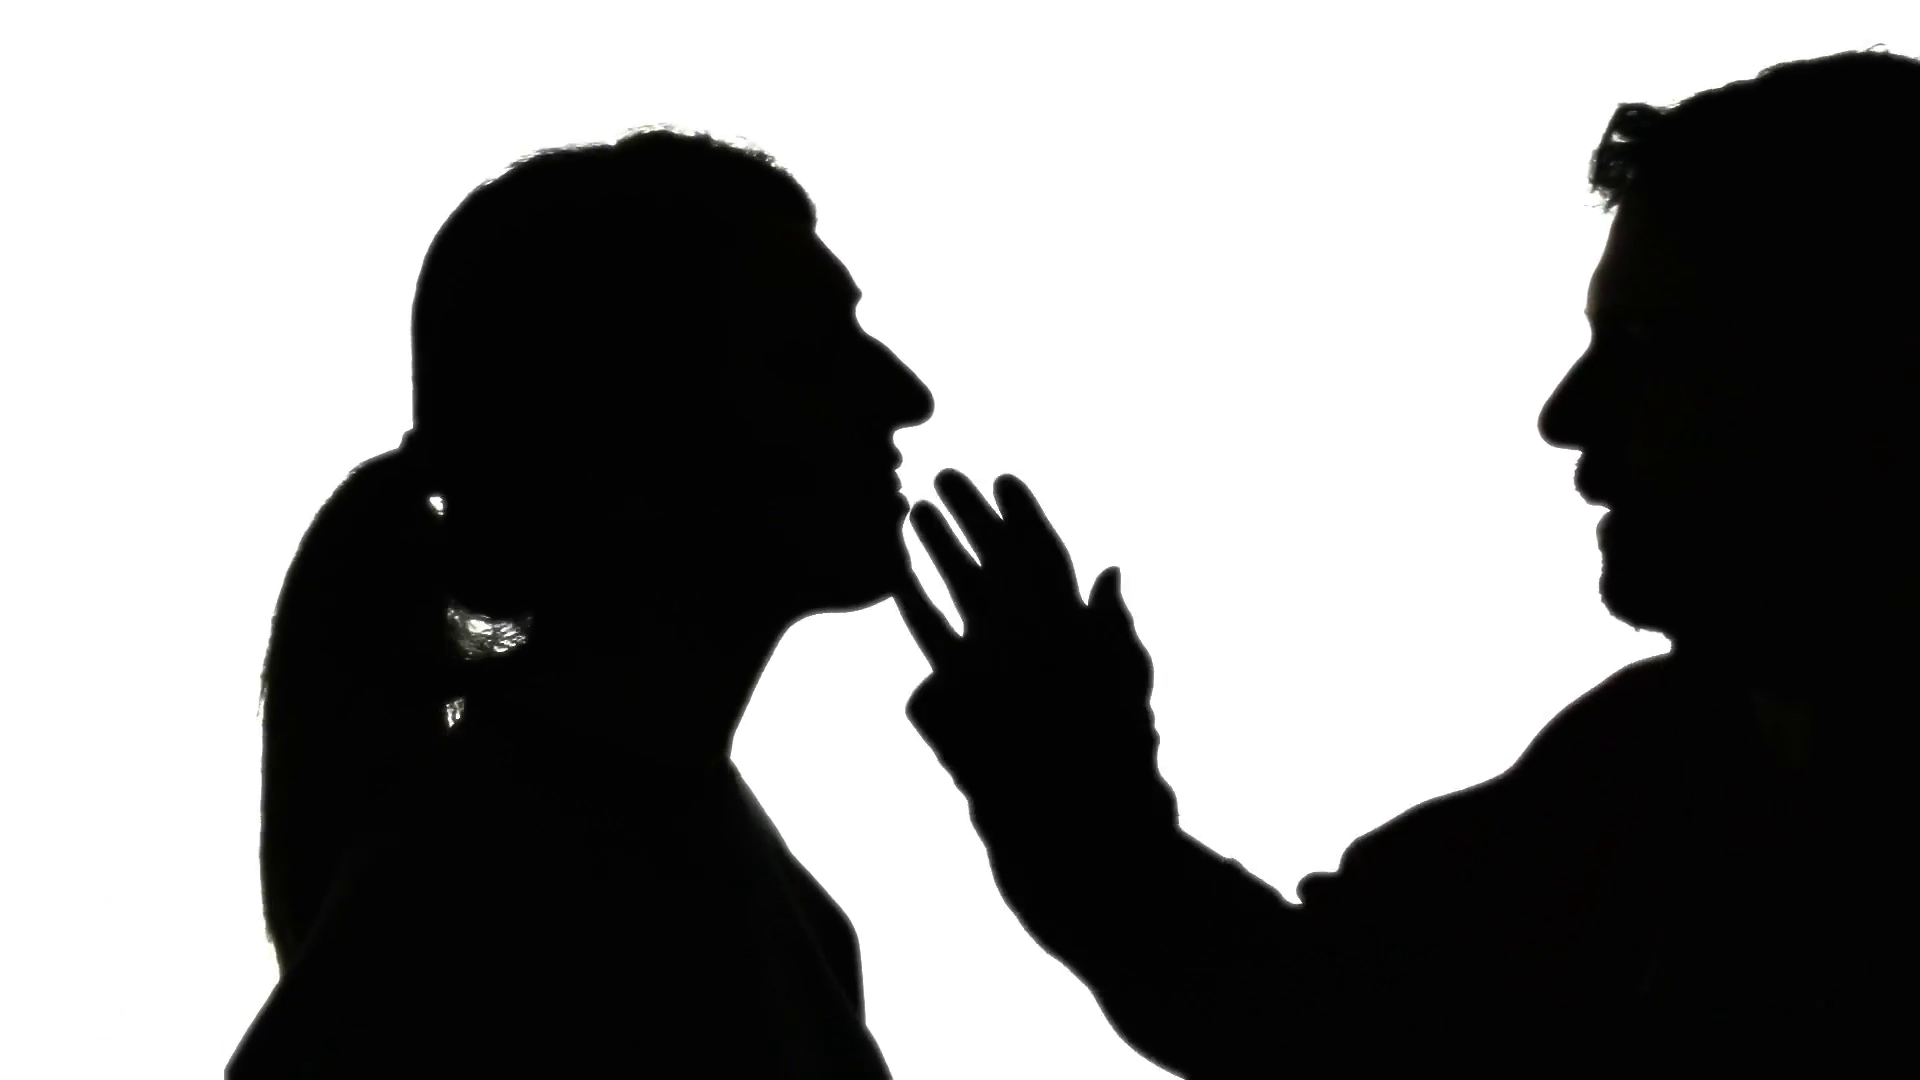 1920x1080 Silhouette Man Woman Making Out. A Man And A Woman Intensely